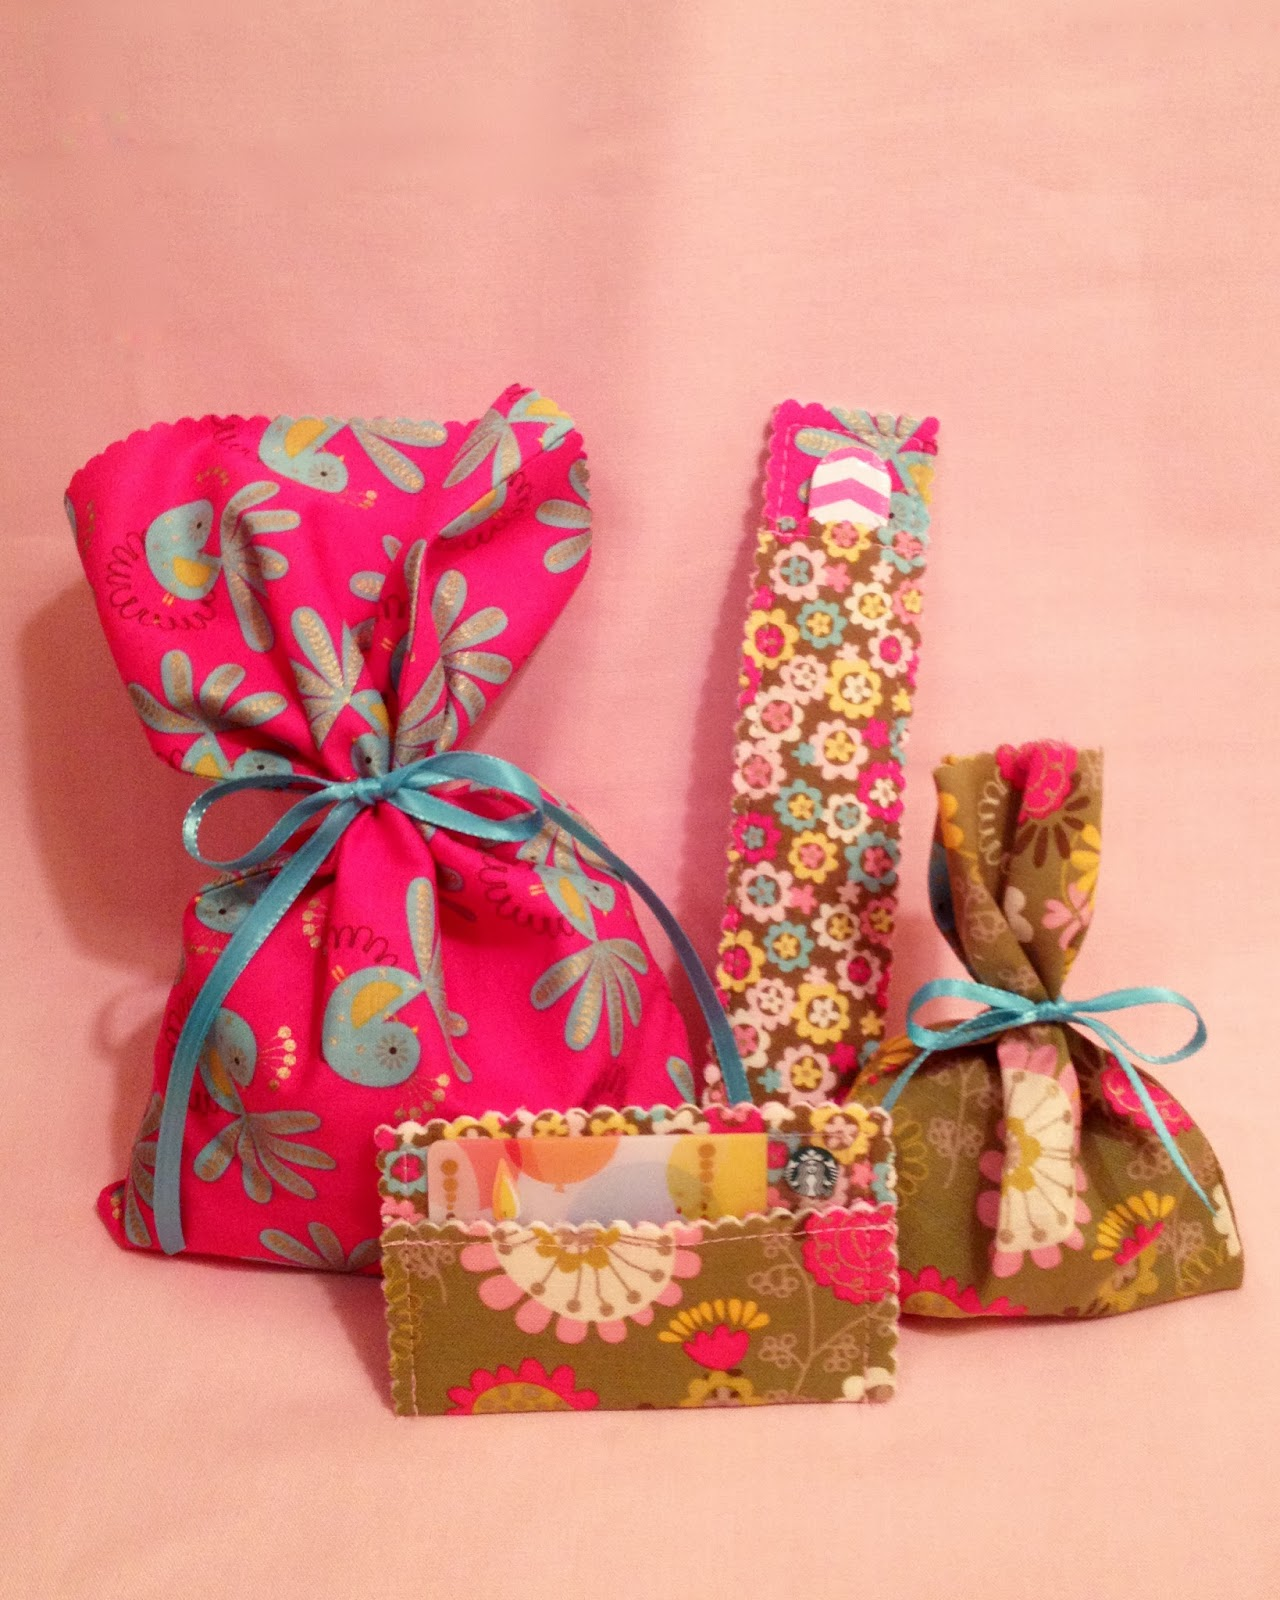 Teacher Birthday Gifts & The Almost Perfectionist: Teacher Birthday Gifts